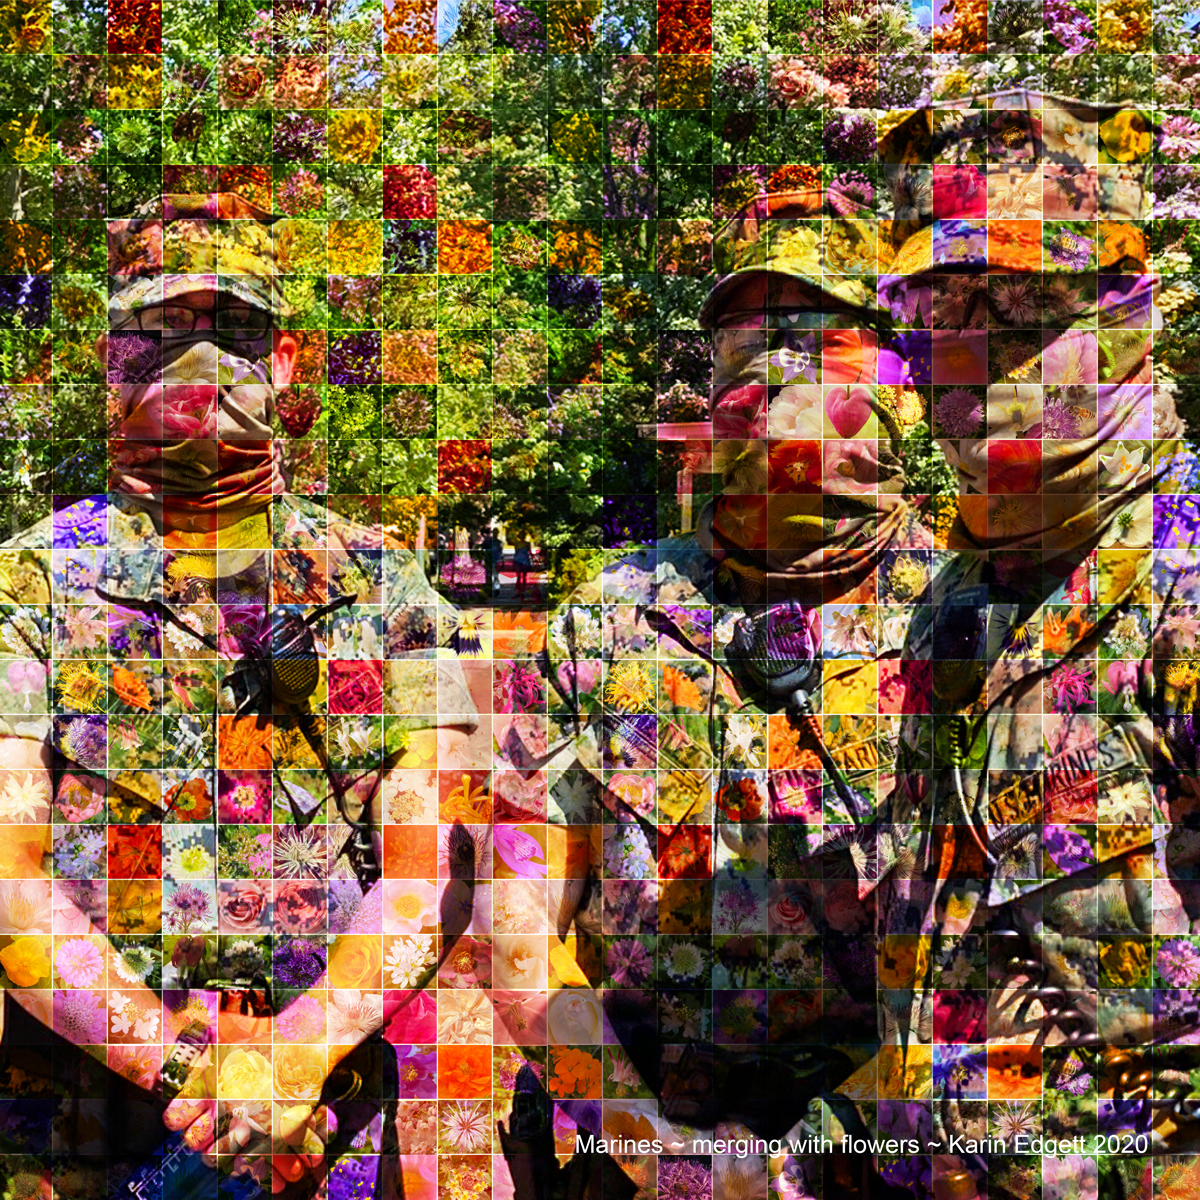 Marines ~ merging with flowers